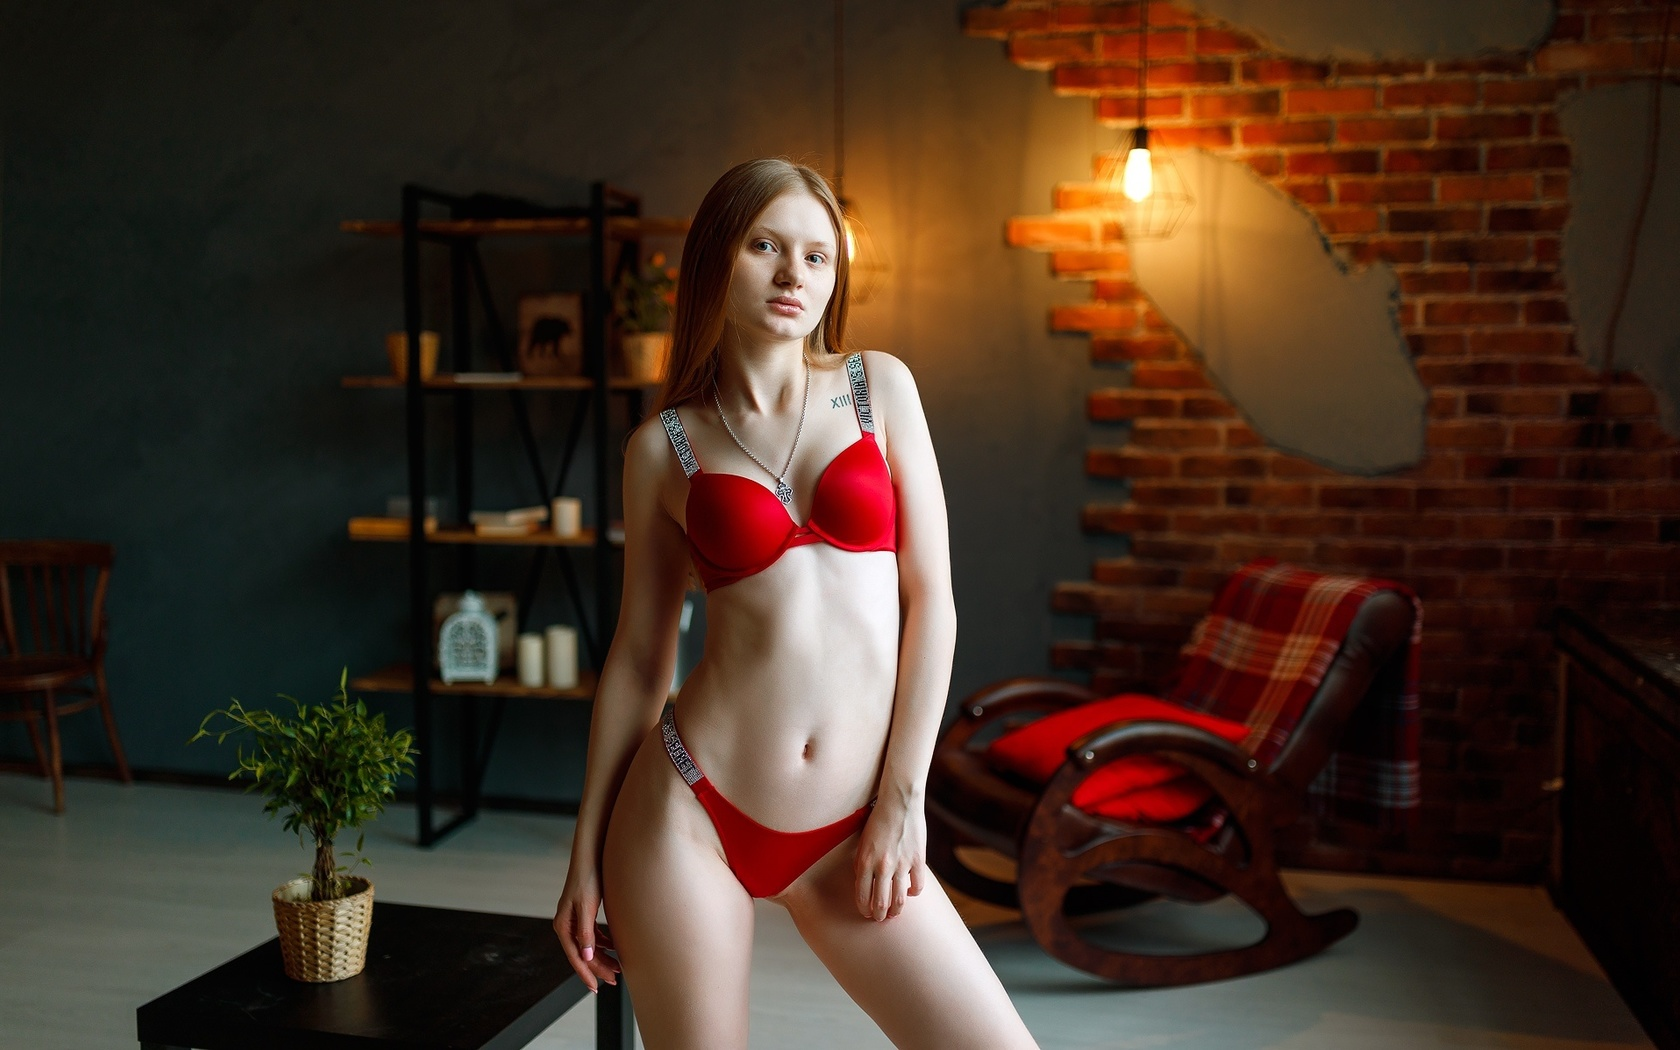 women, belly, red lingerie, plants, tattoo, light bulb, wall, chair, women indoors, pink nails, necklace, cleavage, blonde